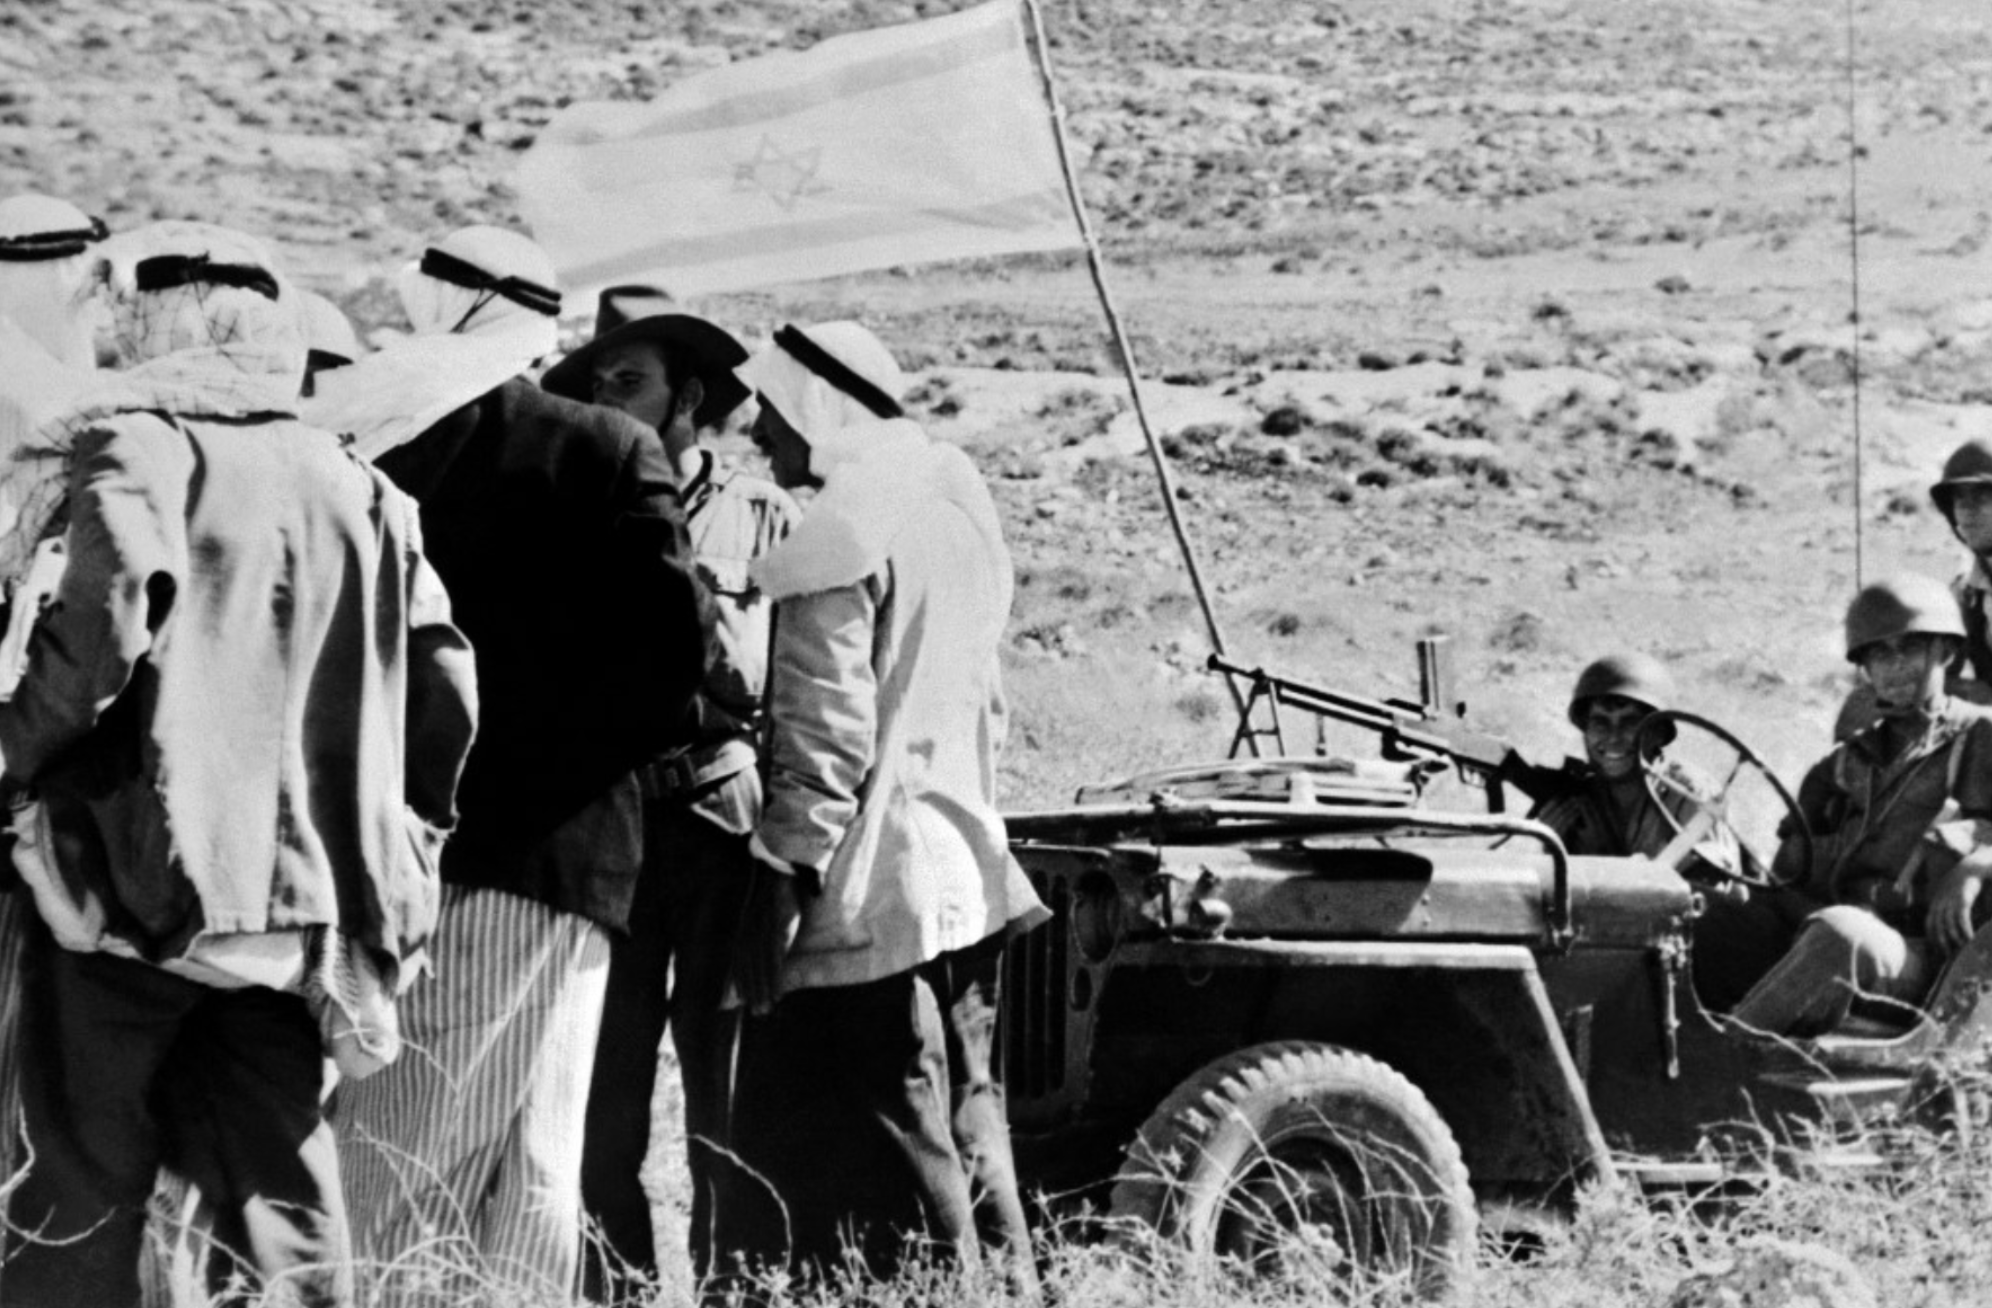 Palestinians speak with Israeli soldiers by a captured Arab village in 1948 (AFP)